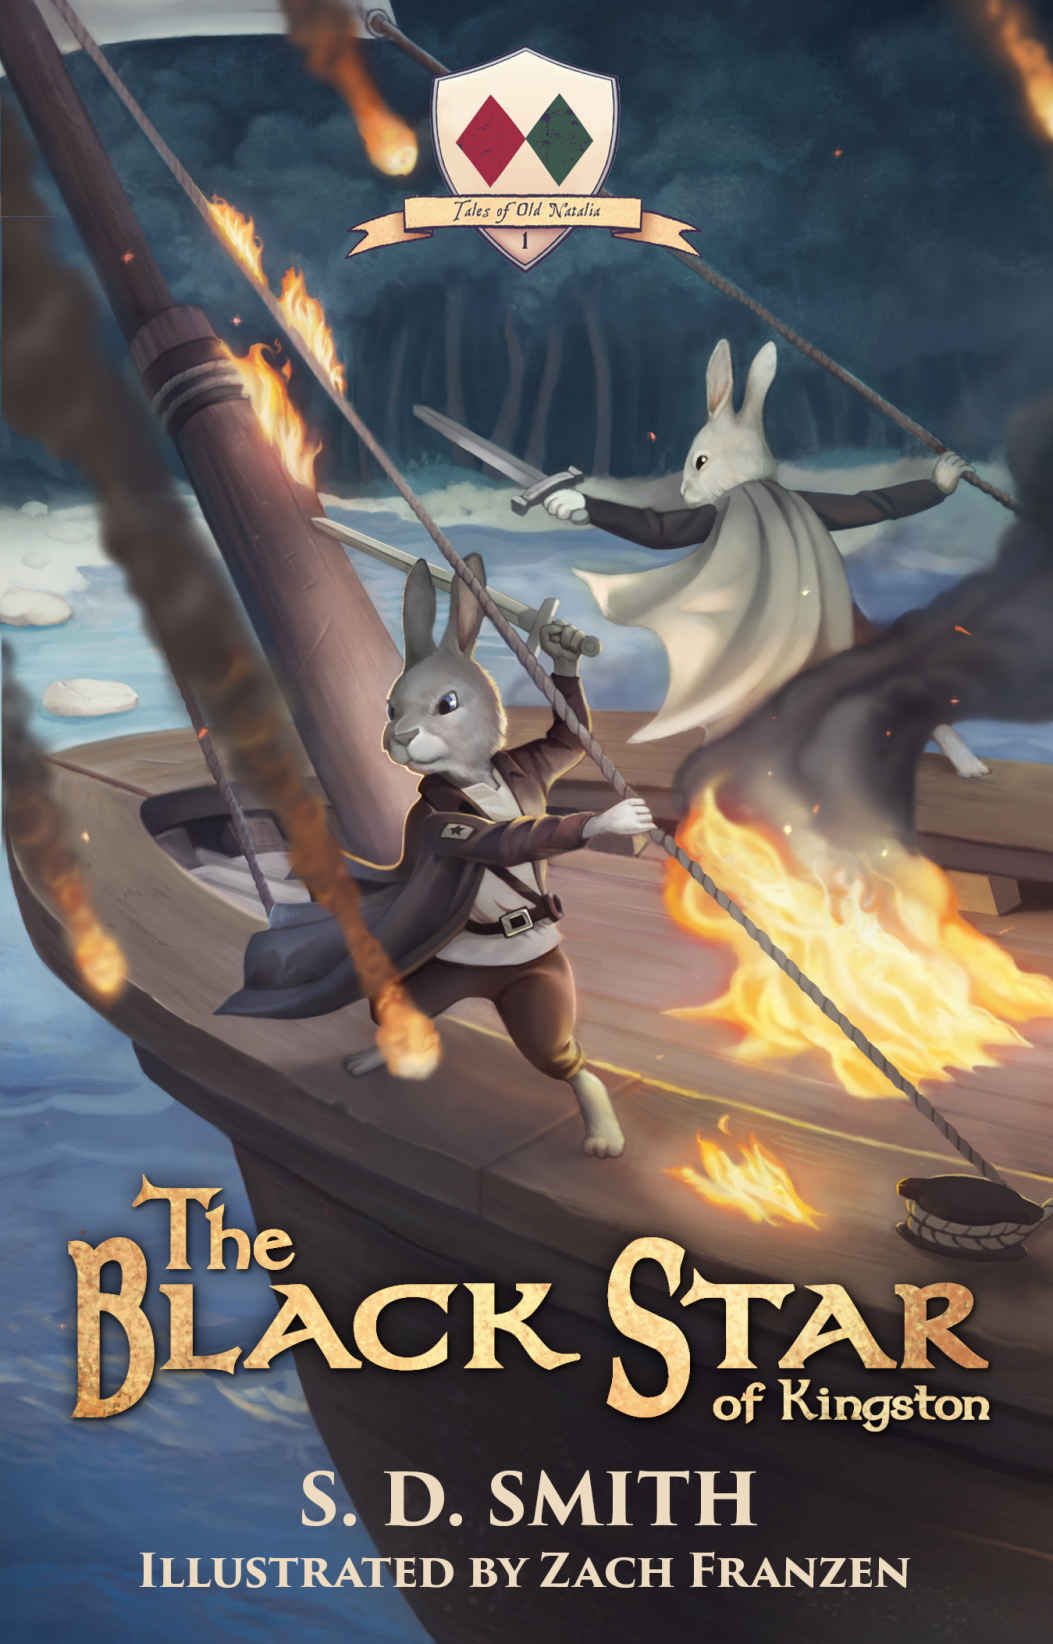 The Black Star of Kingston book cover